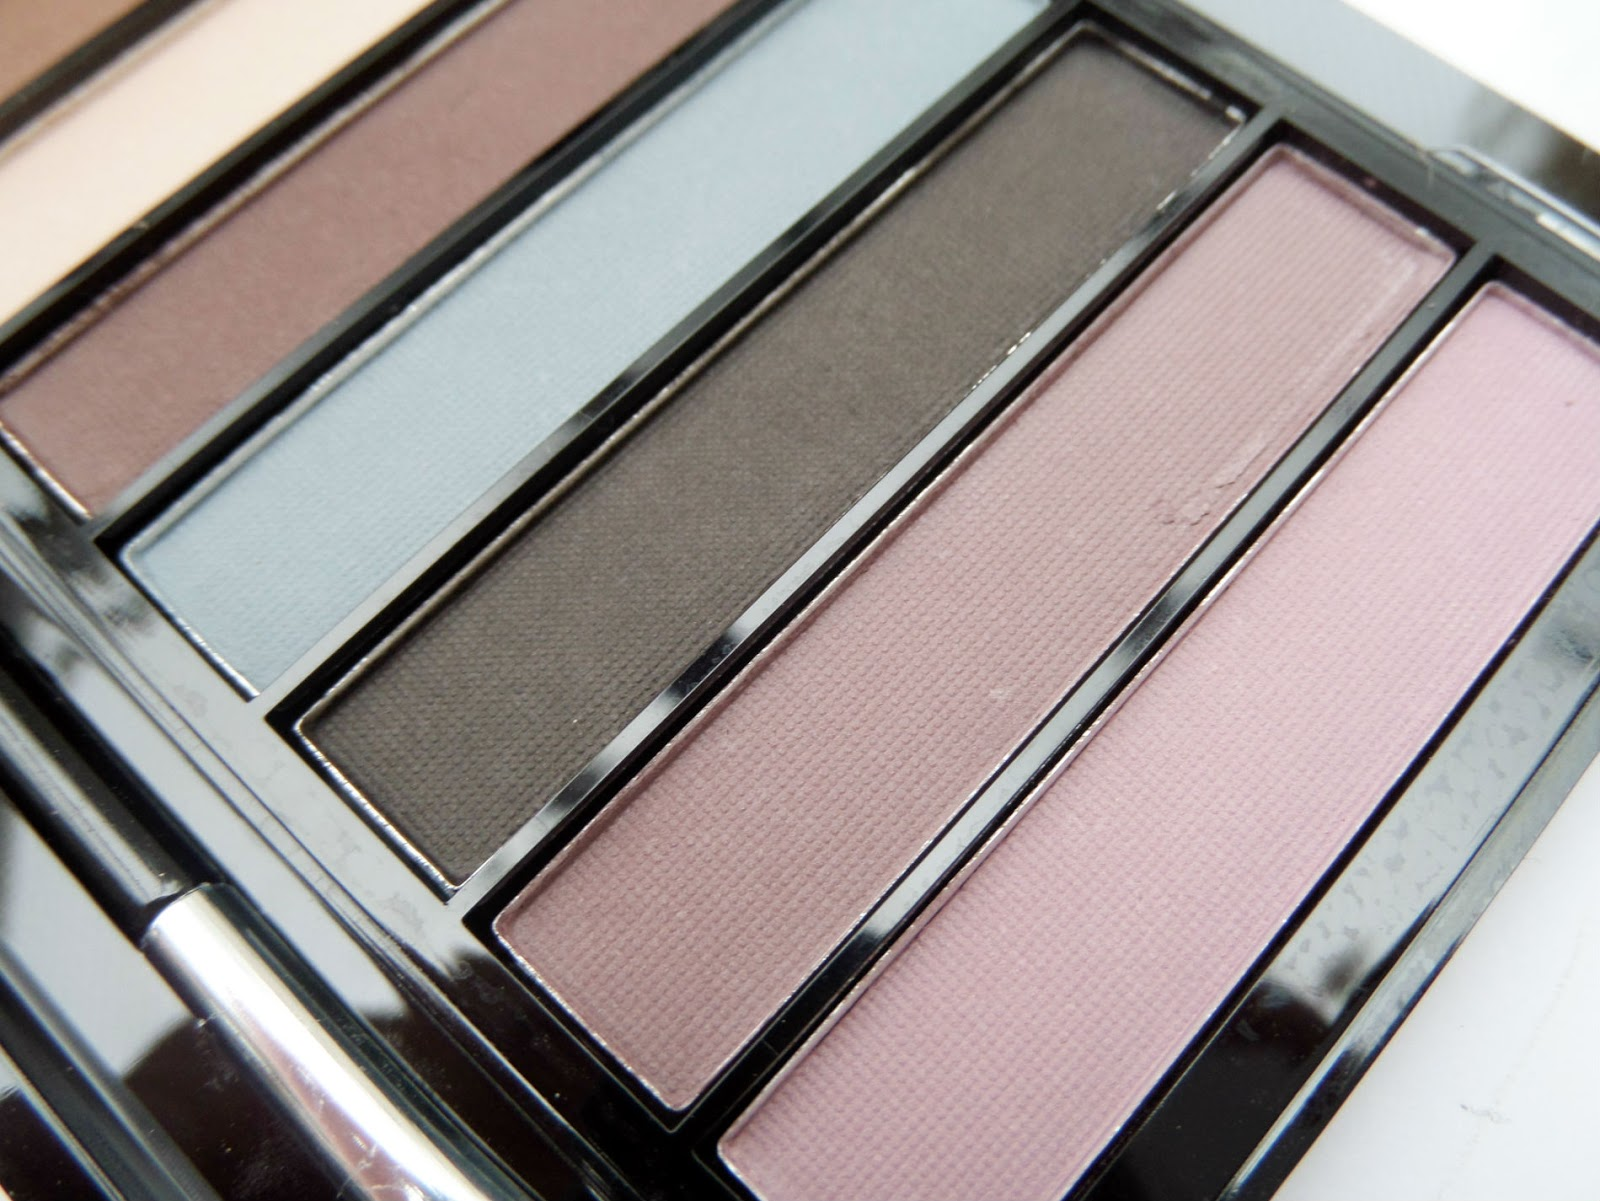 Makeup Revolution Essential Mattes Palette The Purples